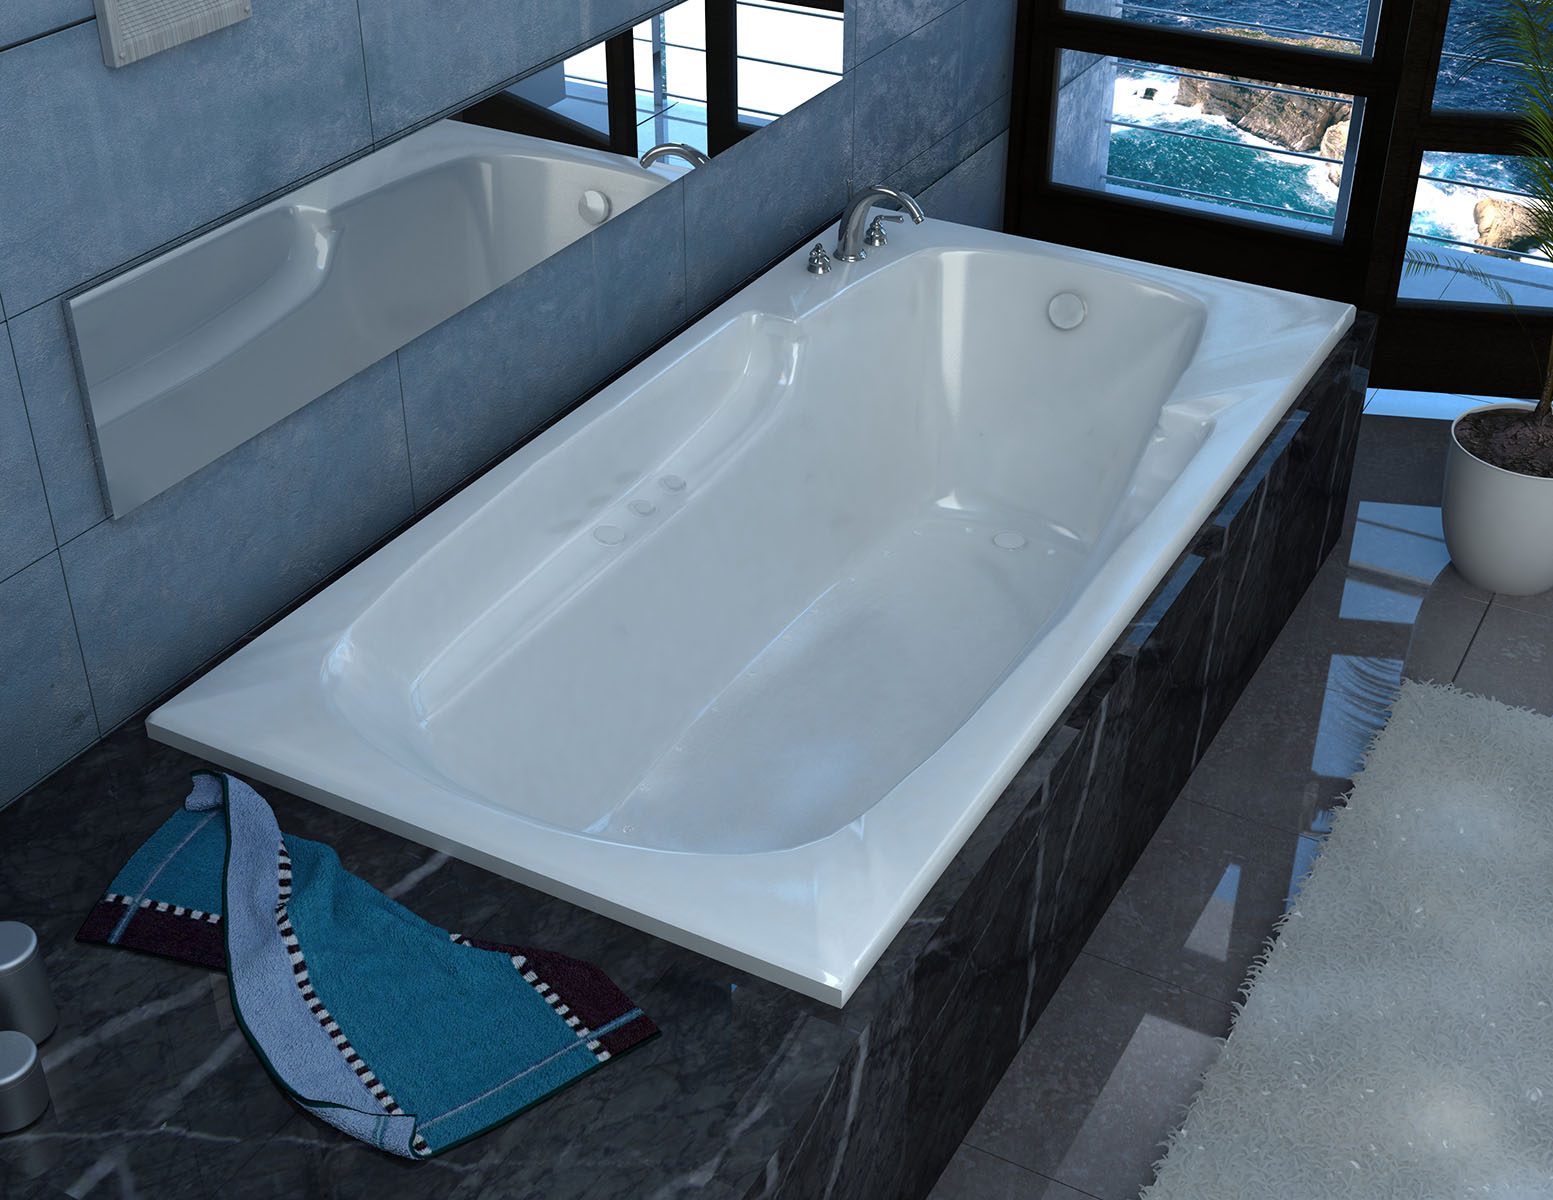 Aesis 32 x 60 Rectangular Air Jetted Bathtub